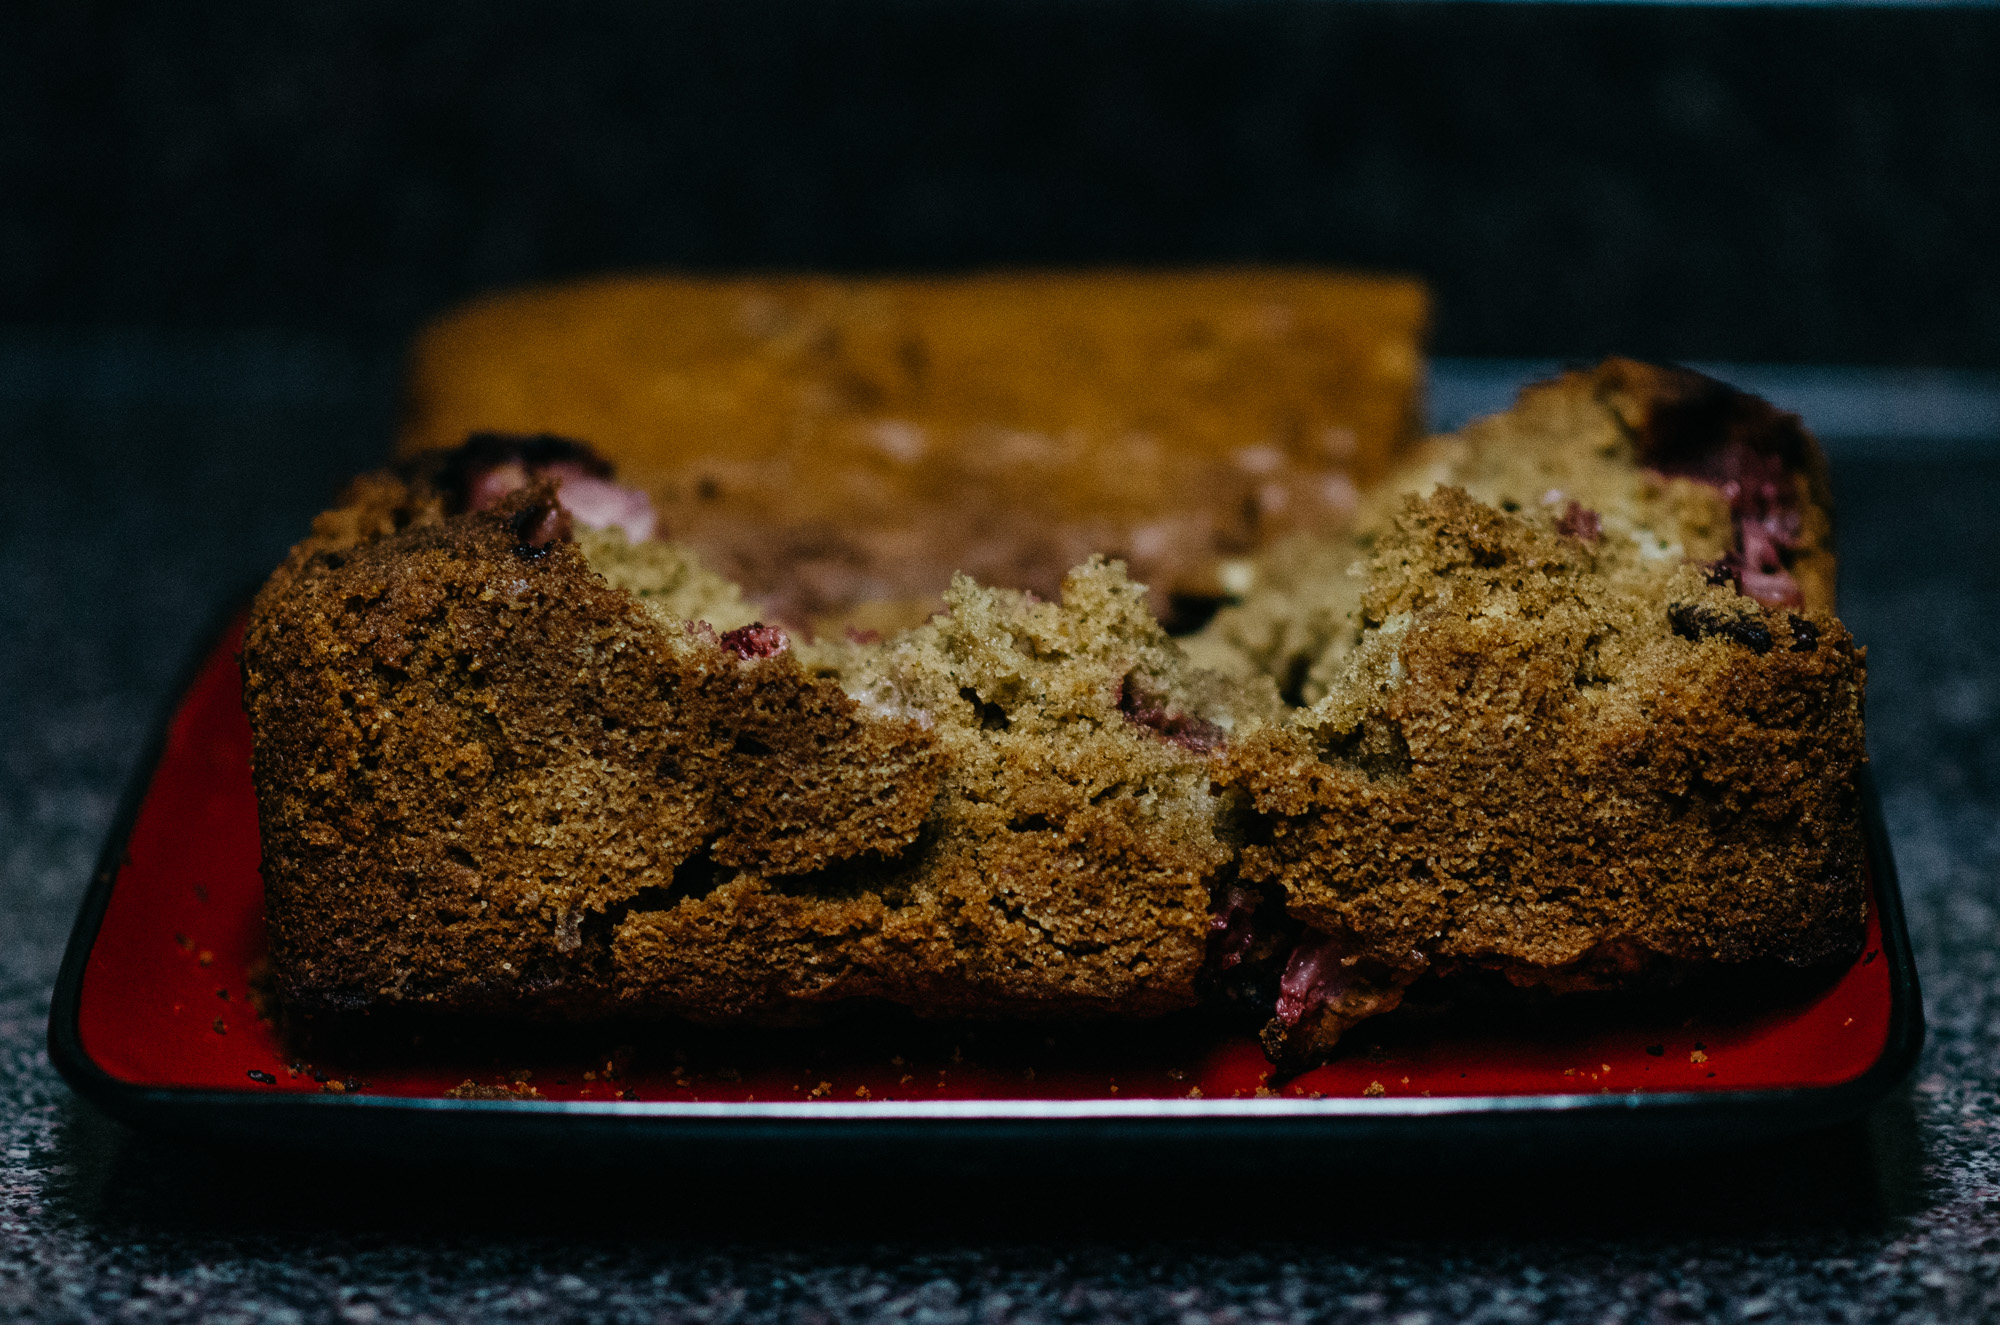 samantha whitford photography strawberry nut bread (1).jpg